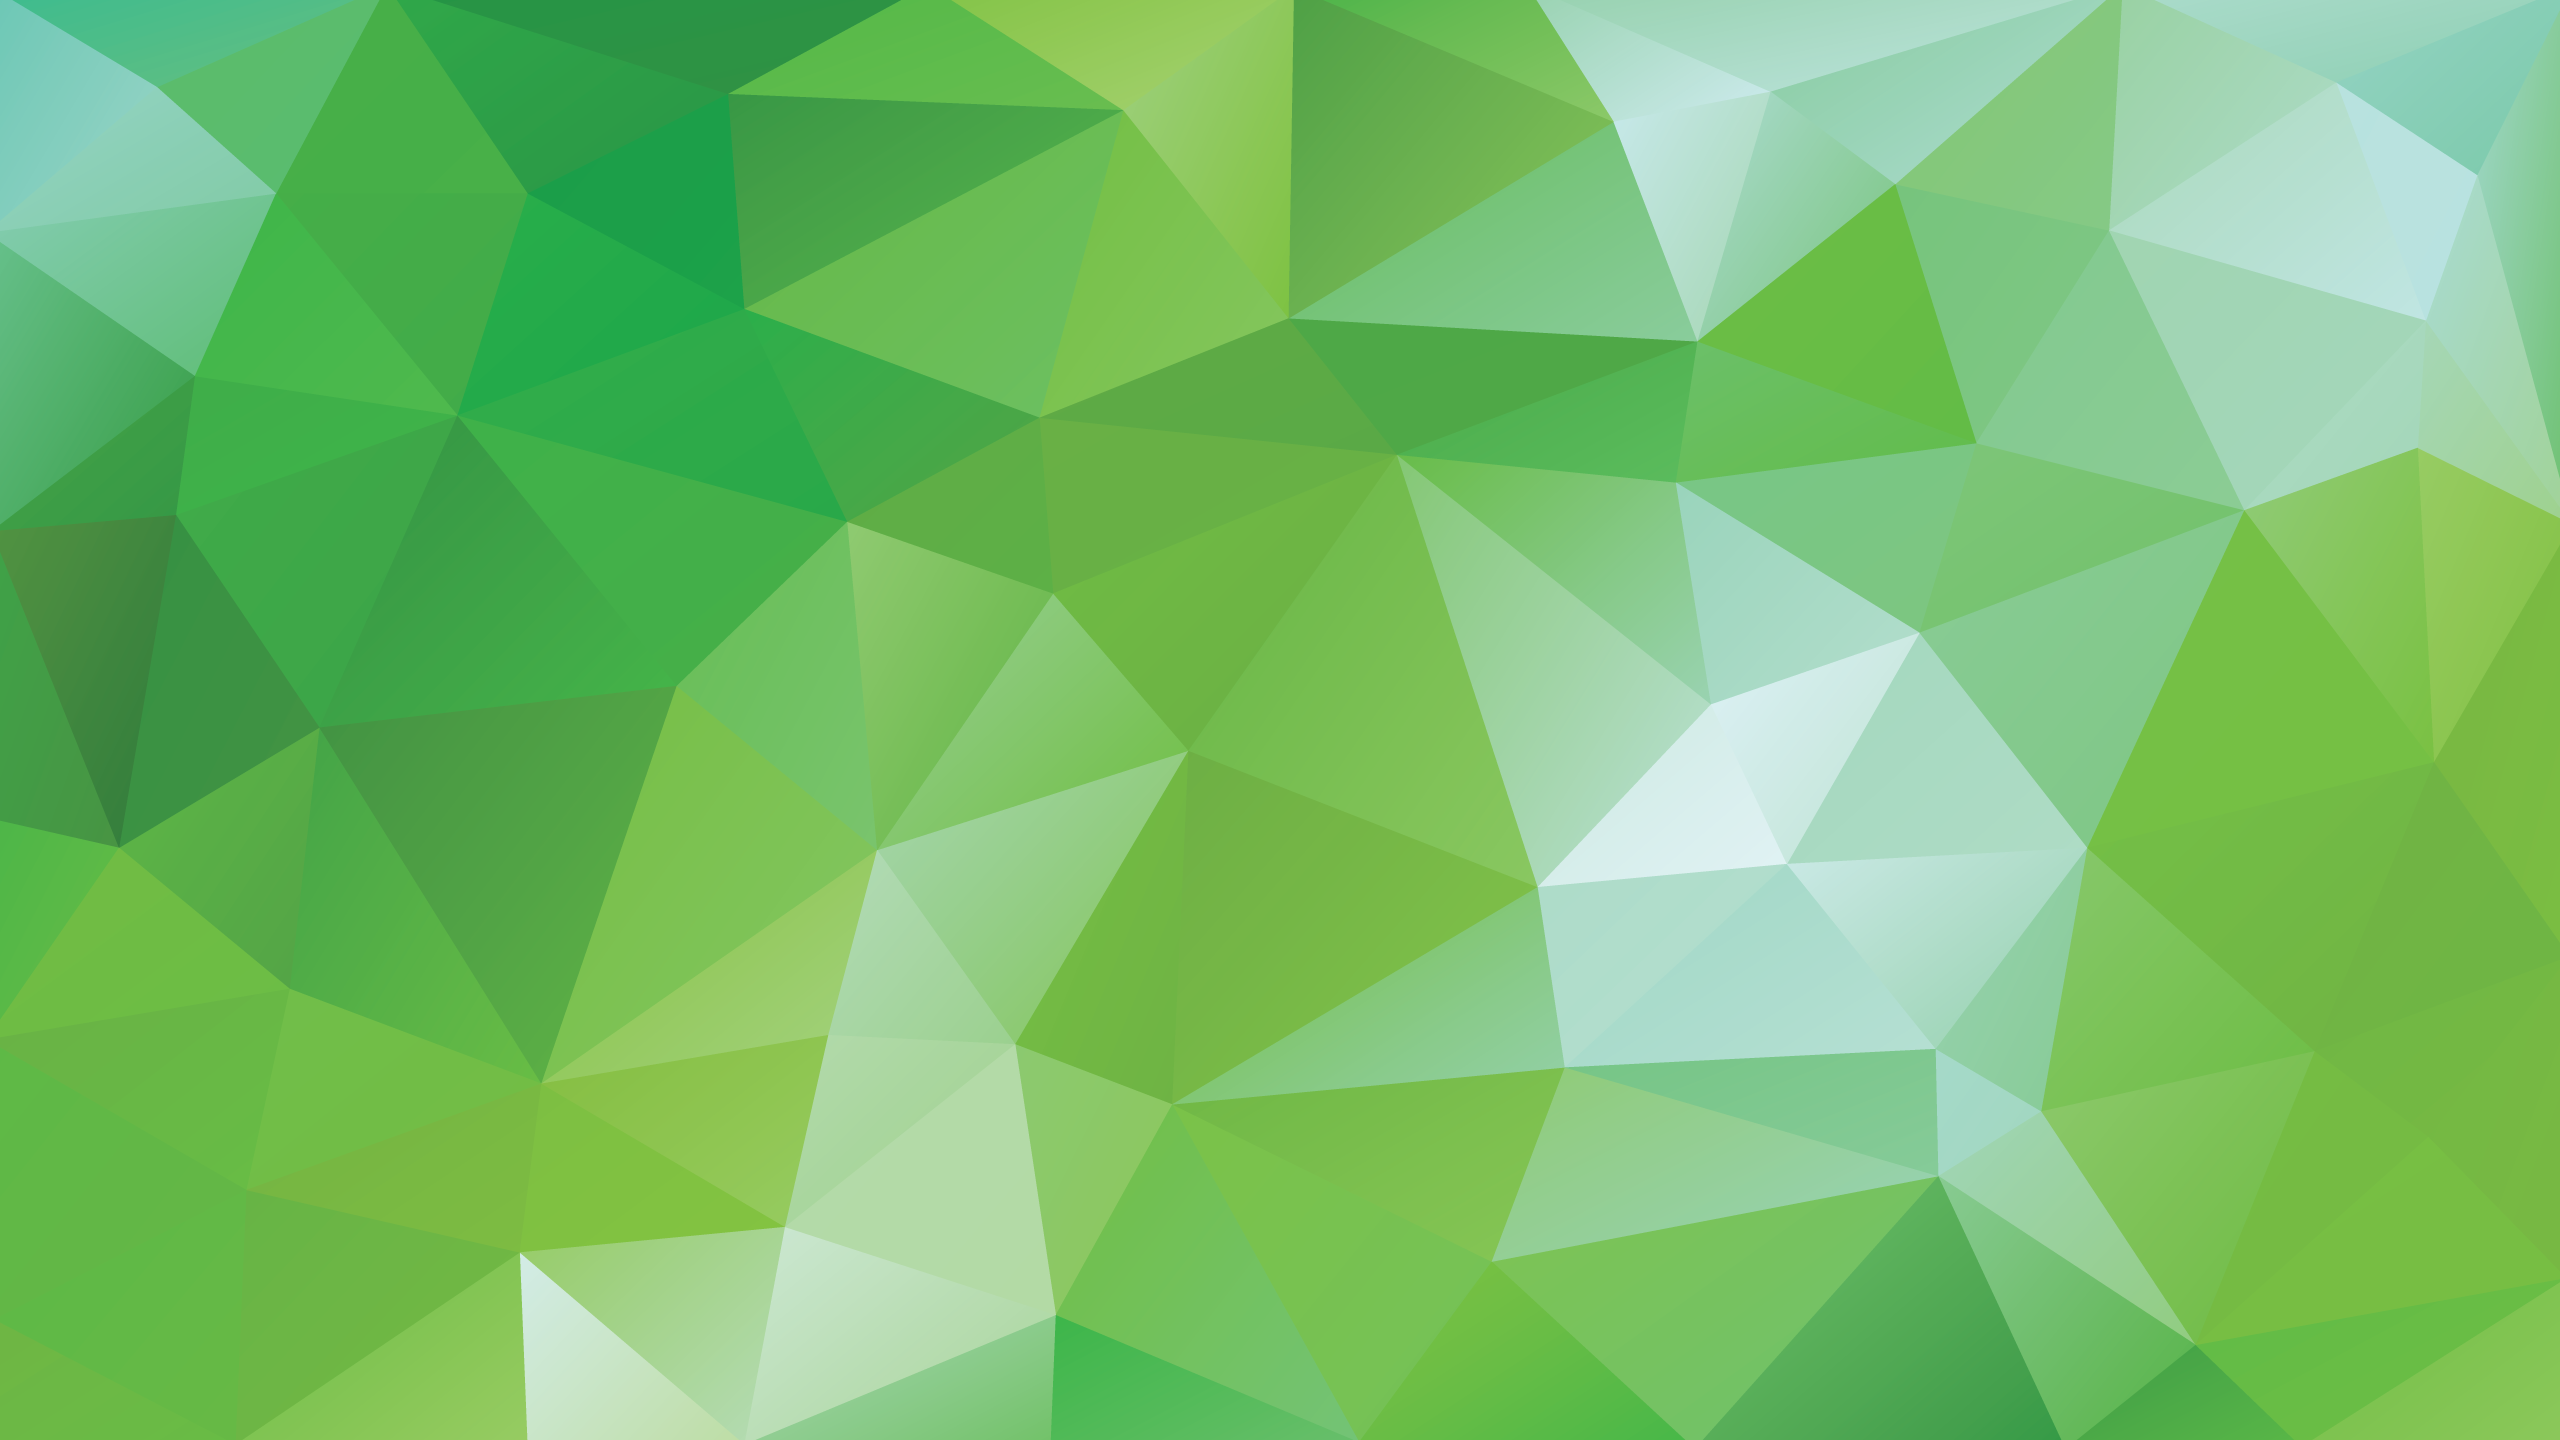 Triangle Background Vector at GetDrawings com | Free for